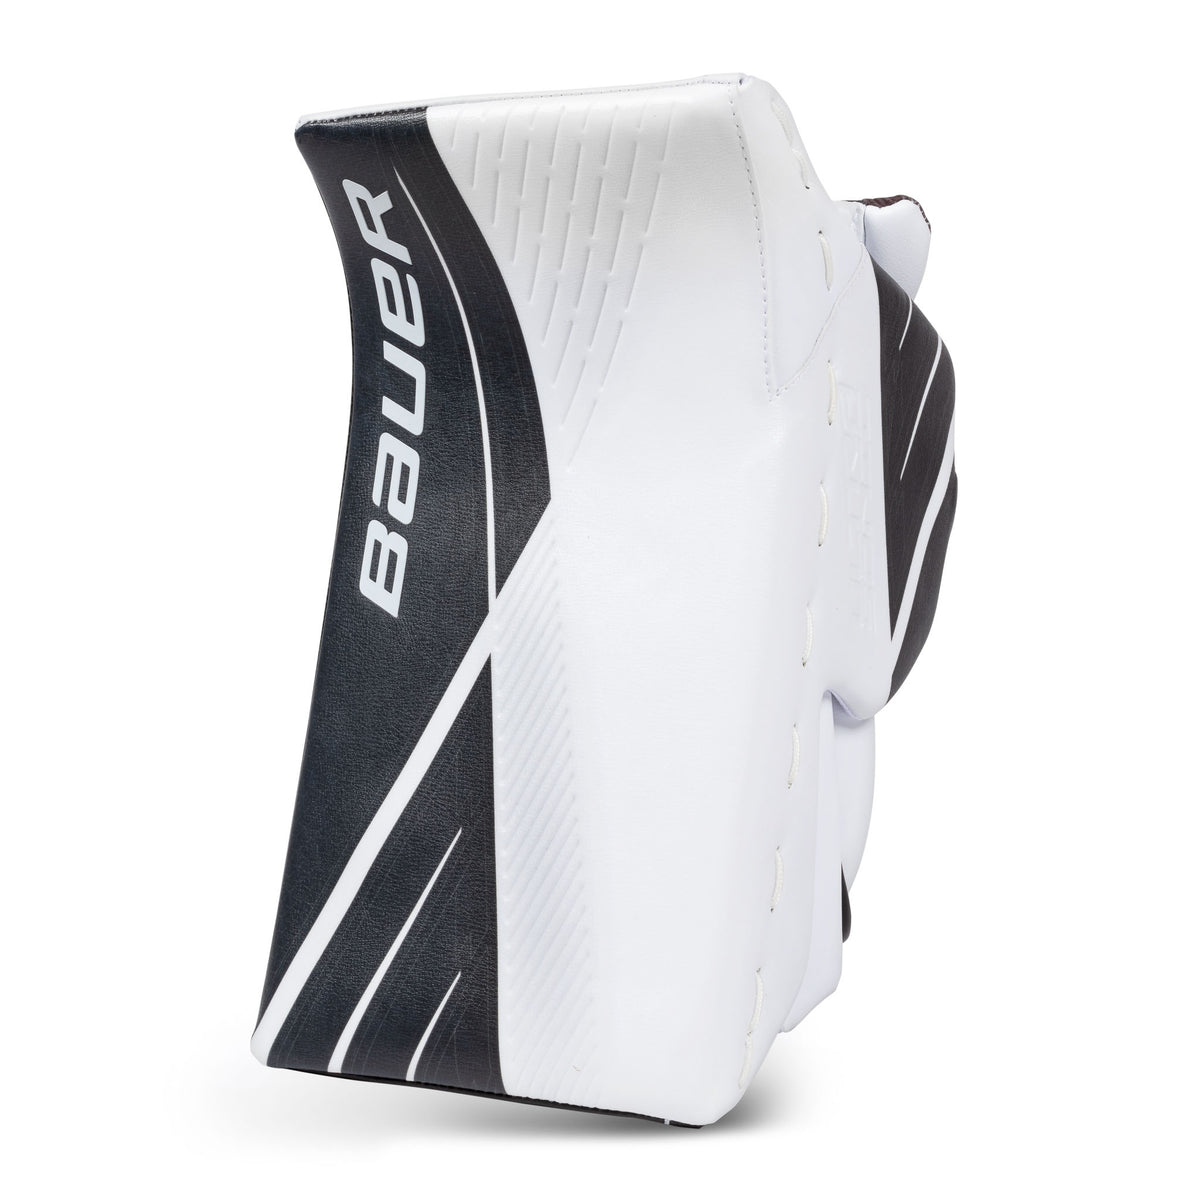 Bauer Supreme UltraSonic Senior Goalie Blocker